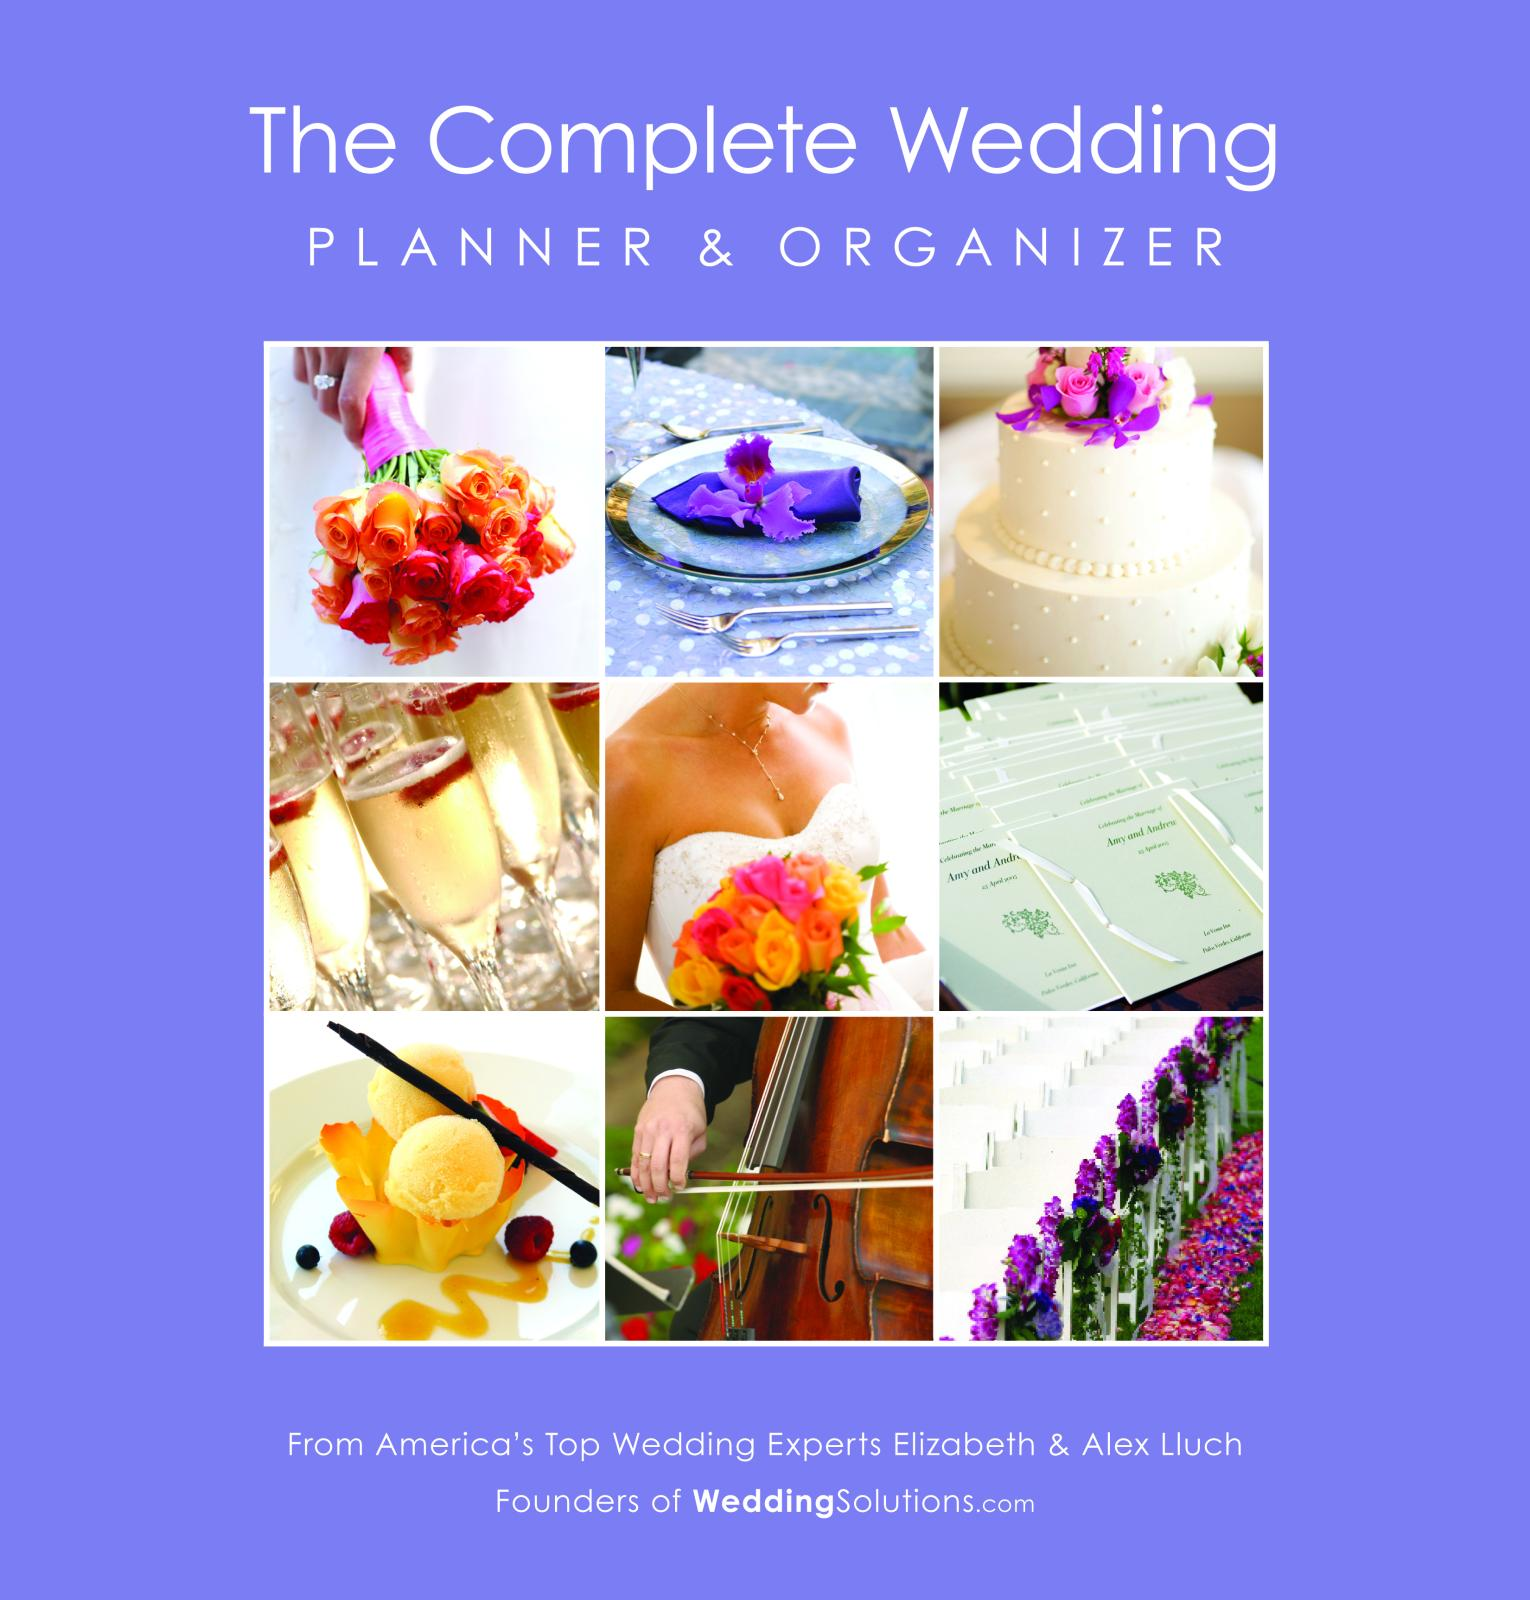 The Complete Wedding Planner & Organizer (Other)